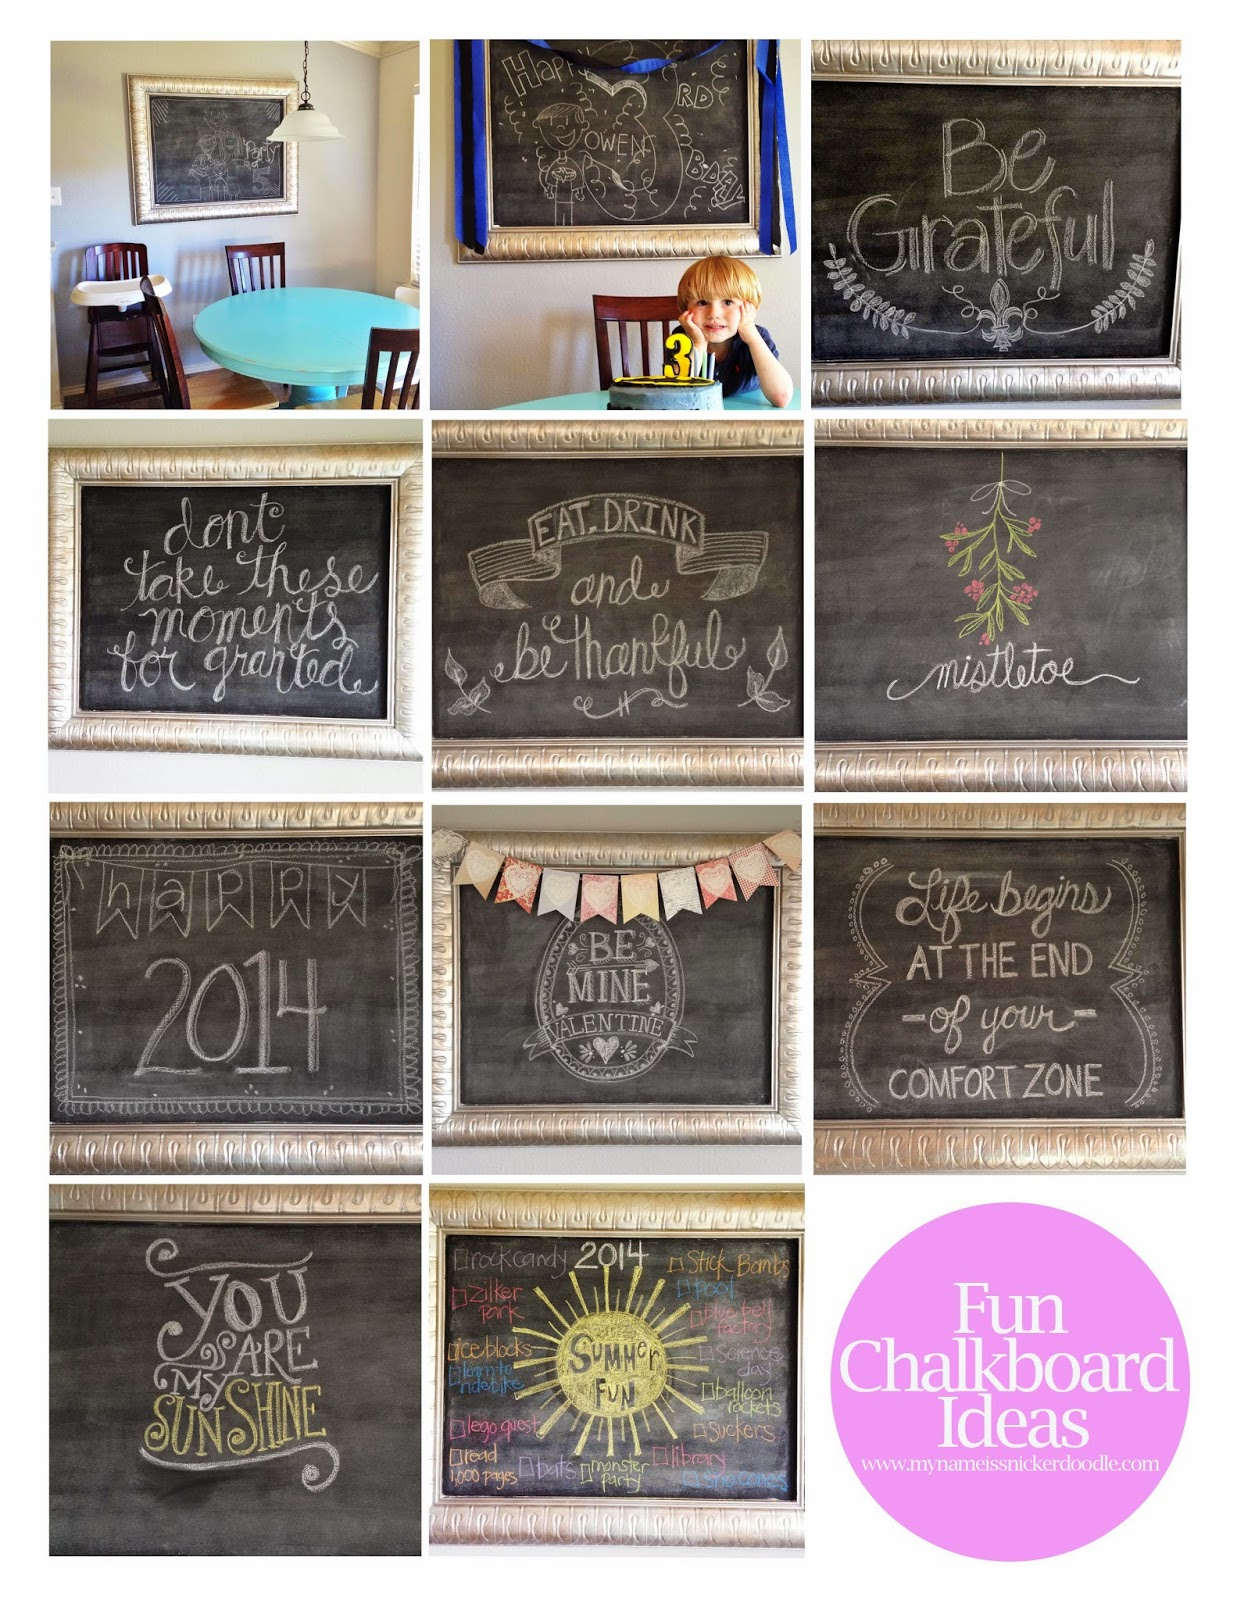 Super fun chalkboard art ideas | My Name Is Snickerdoodle #chalkboard